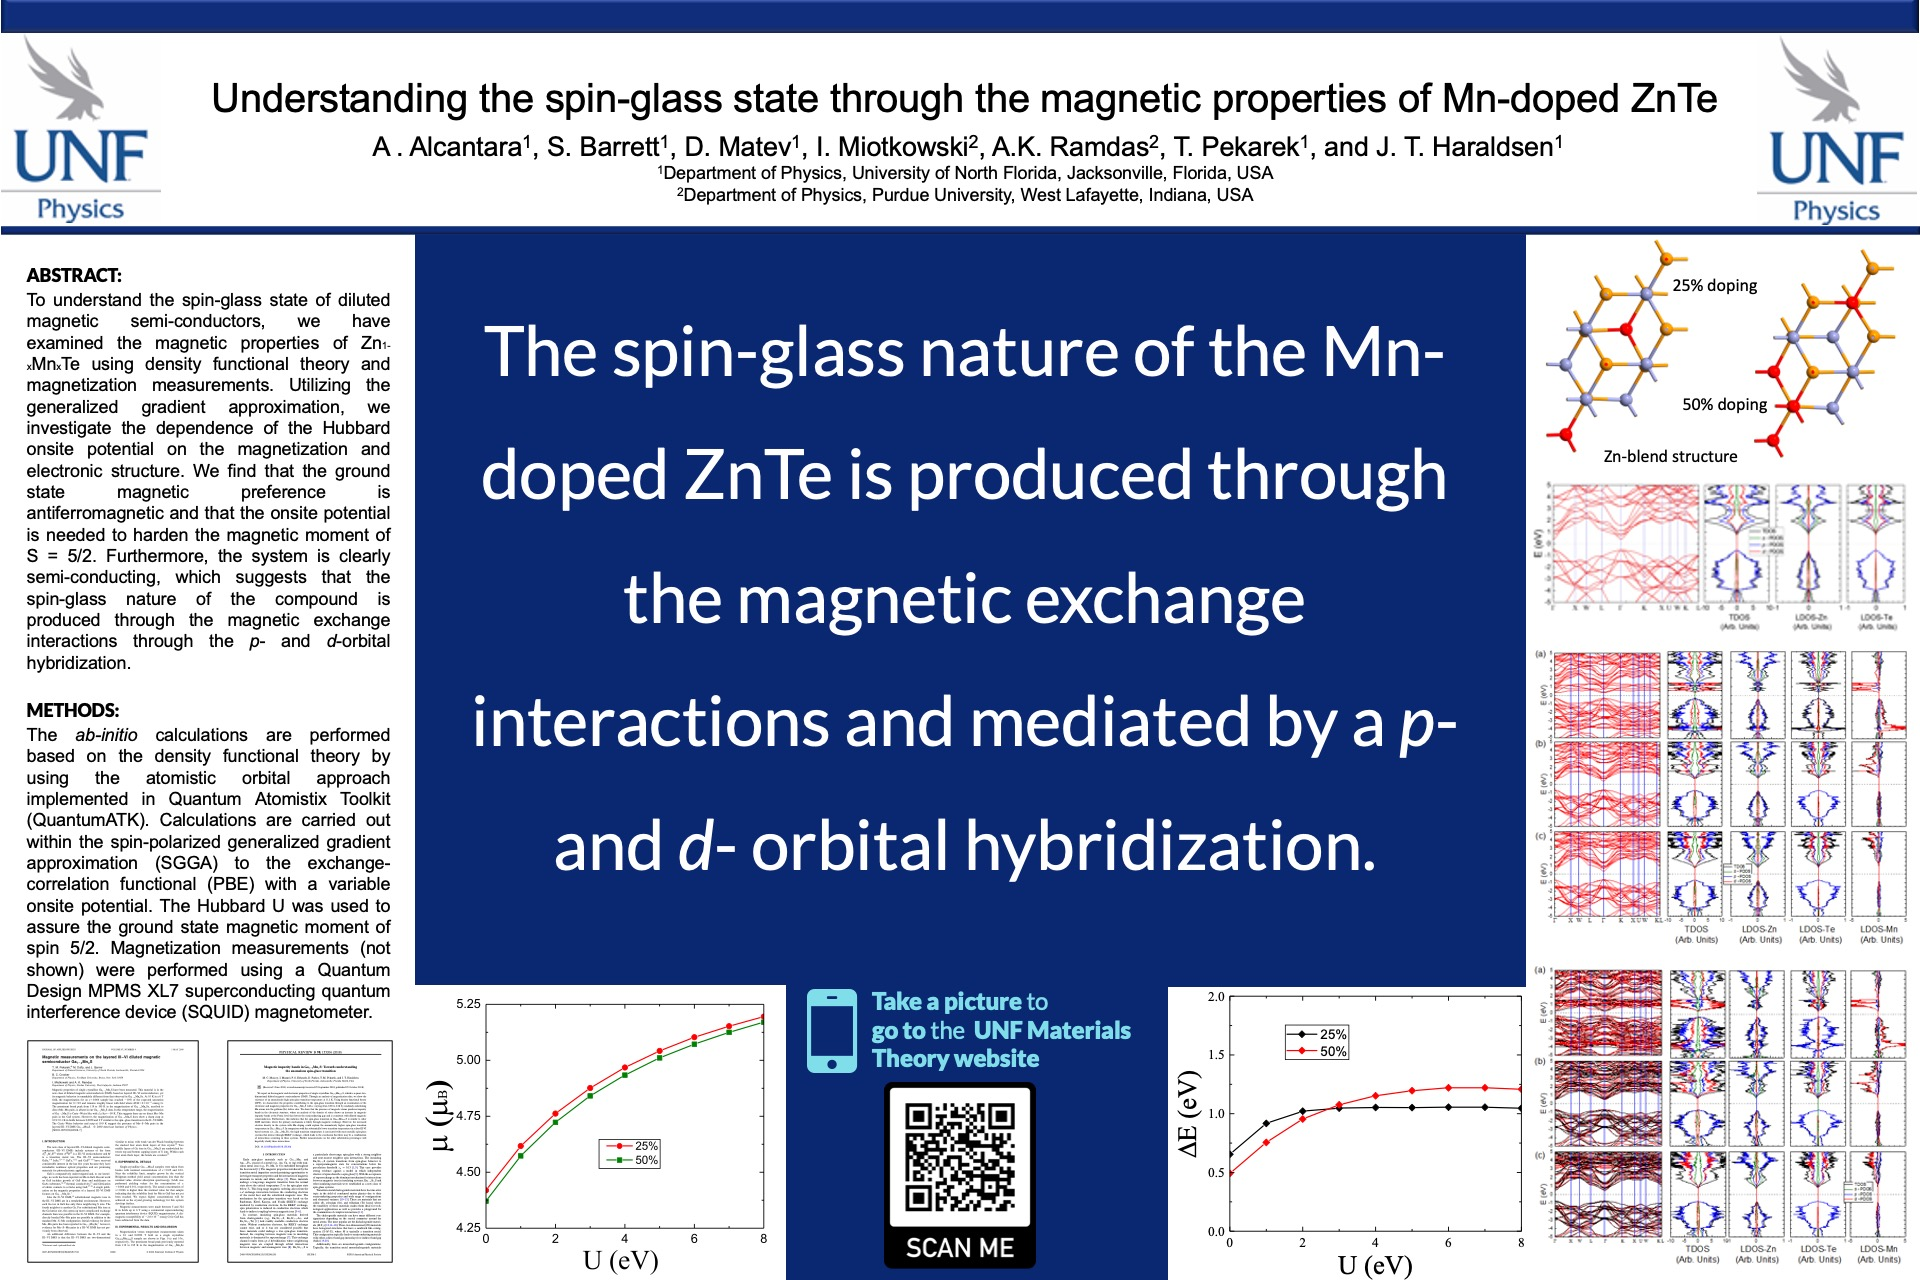 Understanding the spin-glass state through the magnetic properties of Mn-doped ZnTe poster